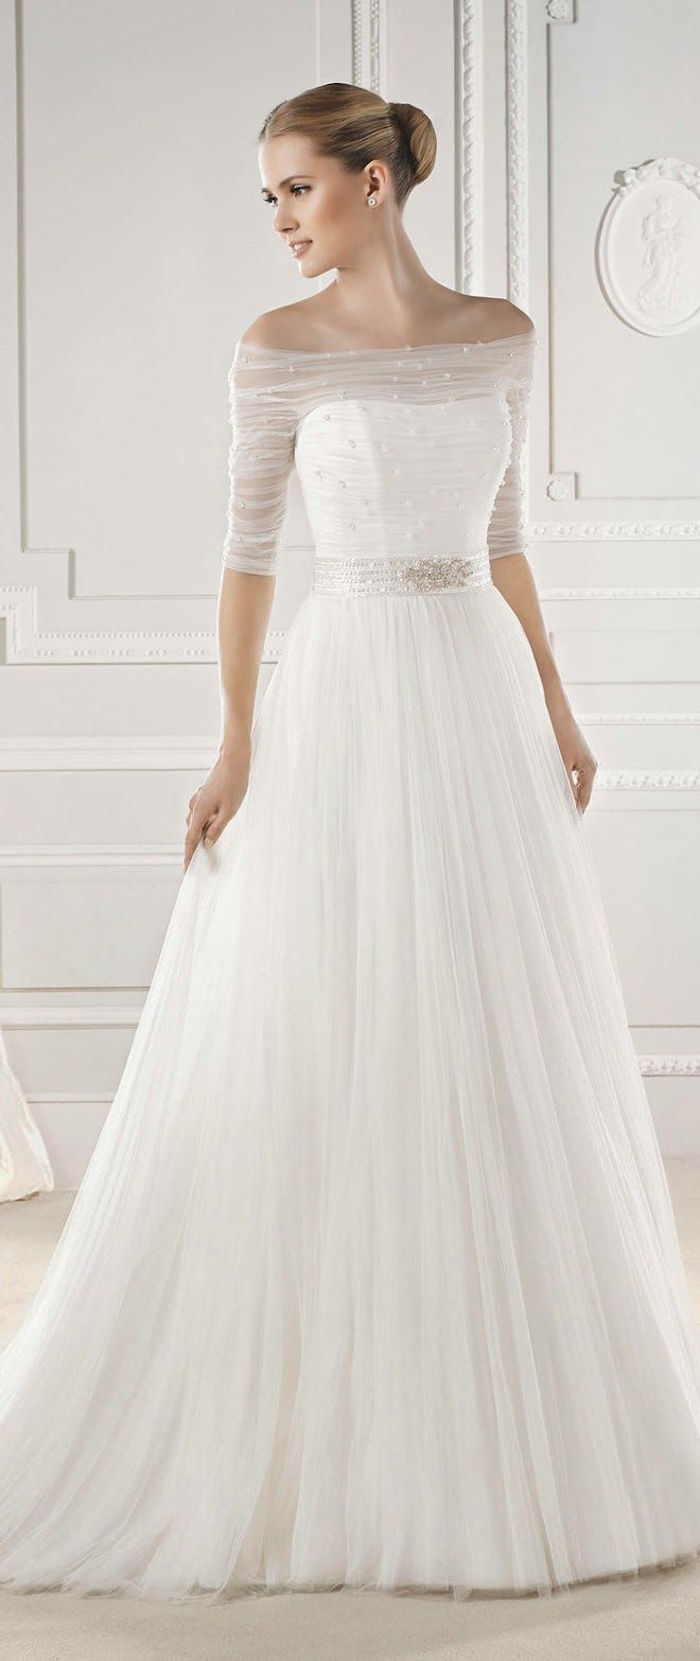 simple wedding dresses with delightful elegance plain wedding dresses simple wedding dresses 22 km